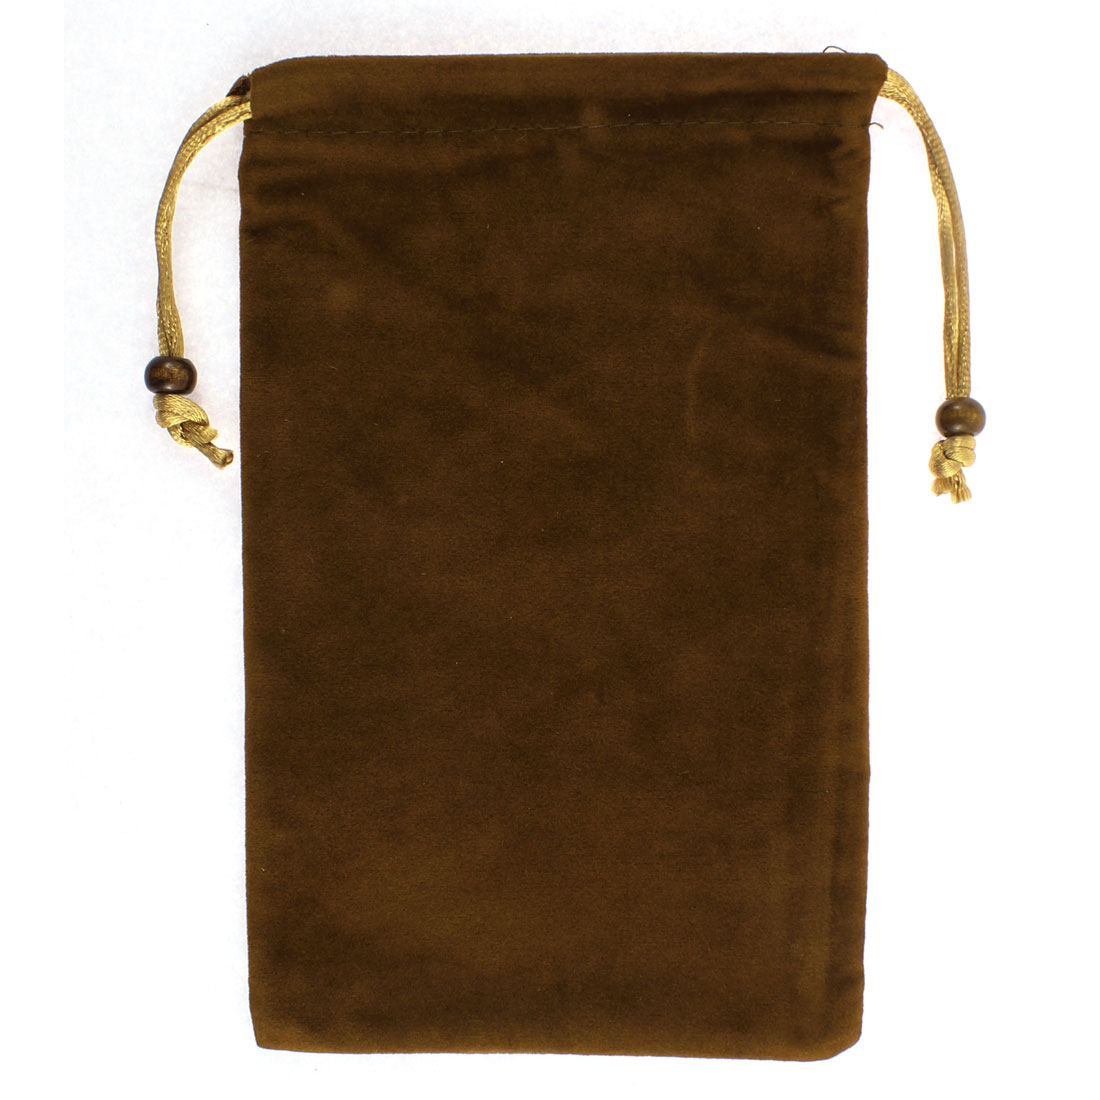 Rectangle Shaped Drawstring Cell Phone Pouch Sleeve Bag Chocolate Color